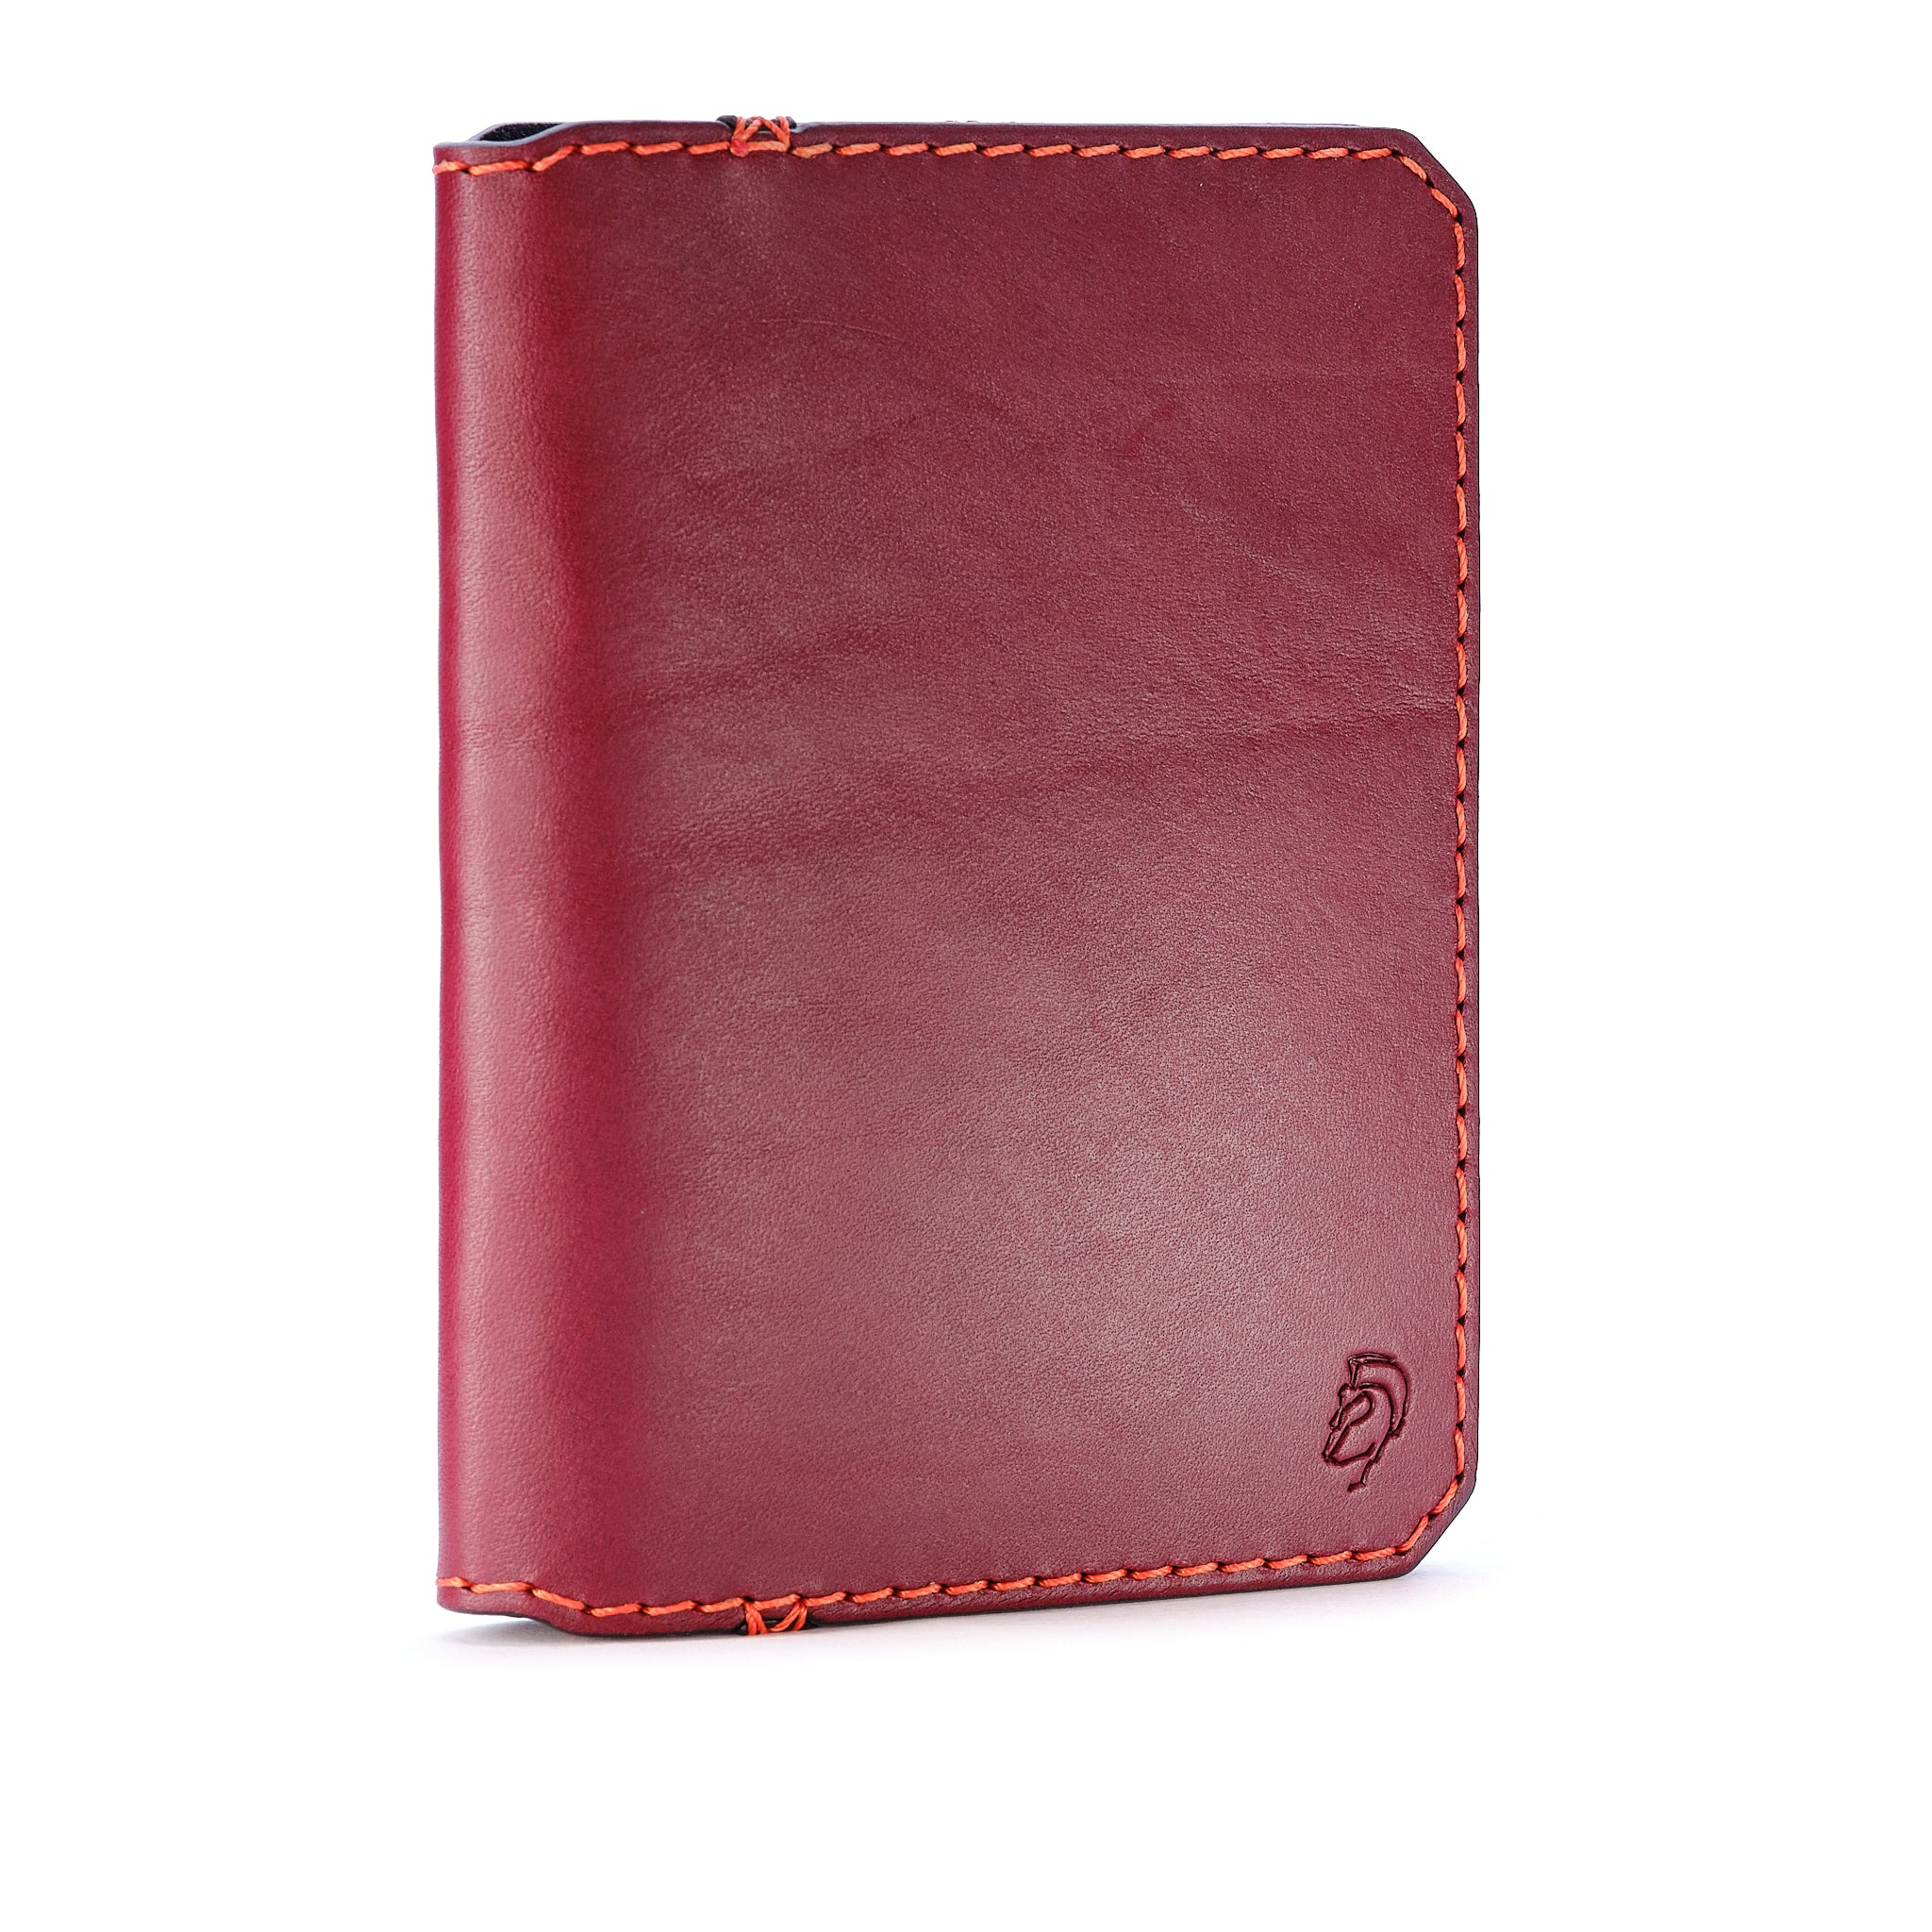 № 1317 NOMAD Passport Wallet